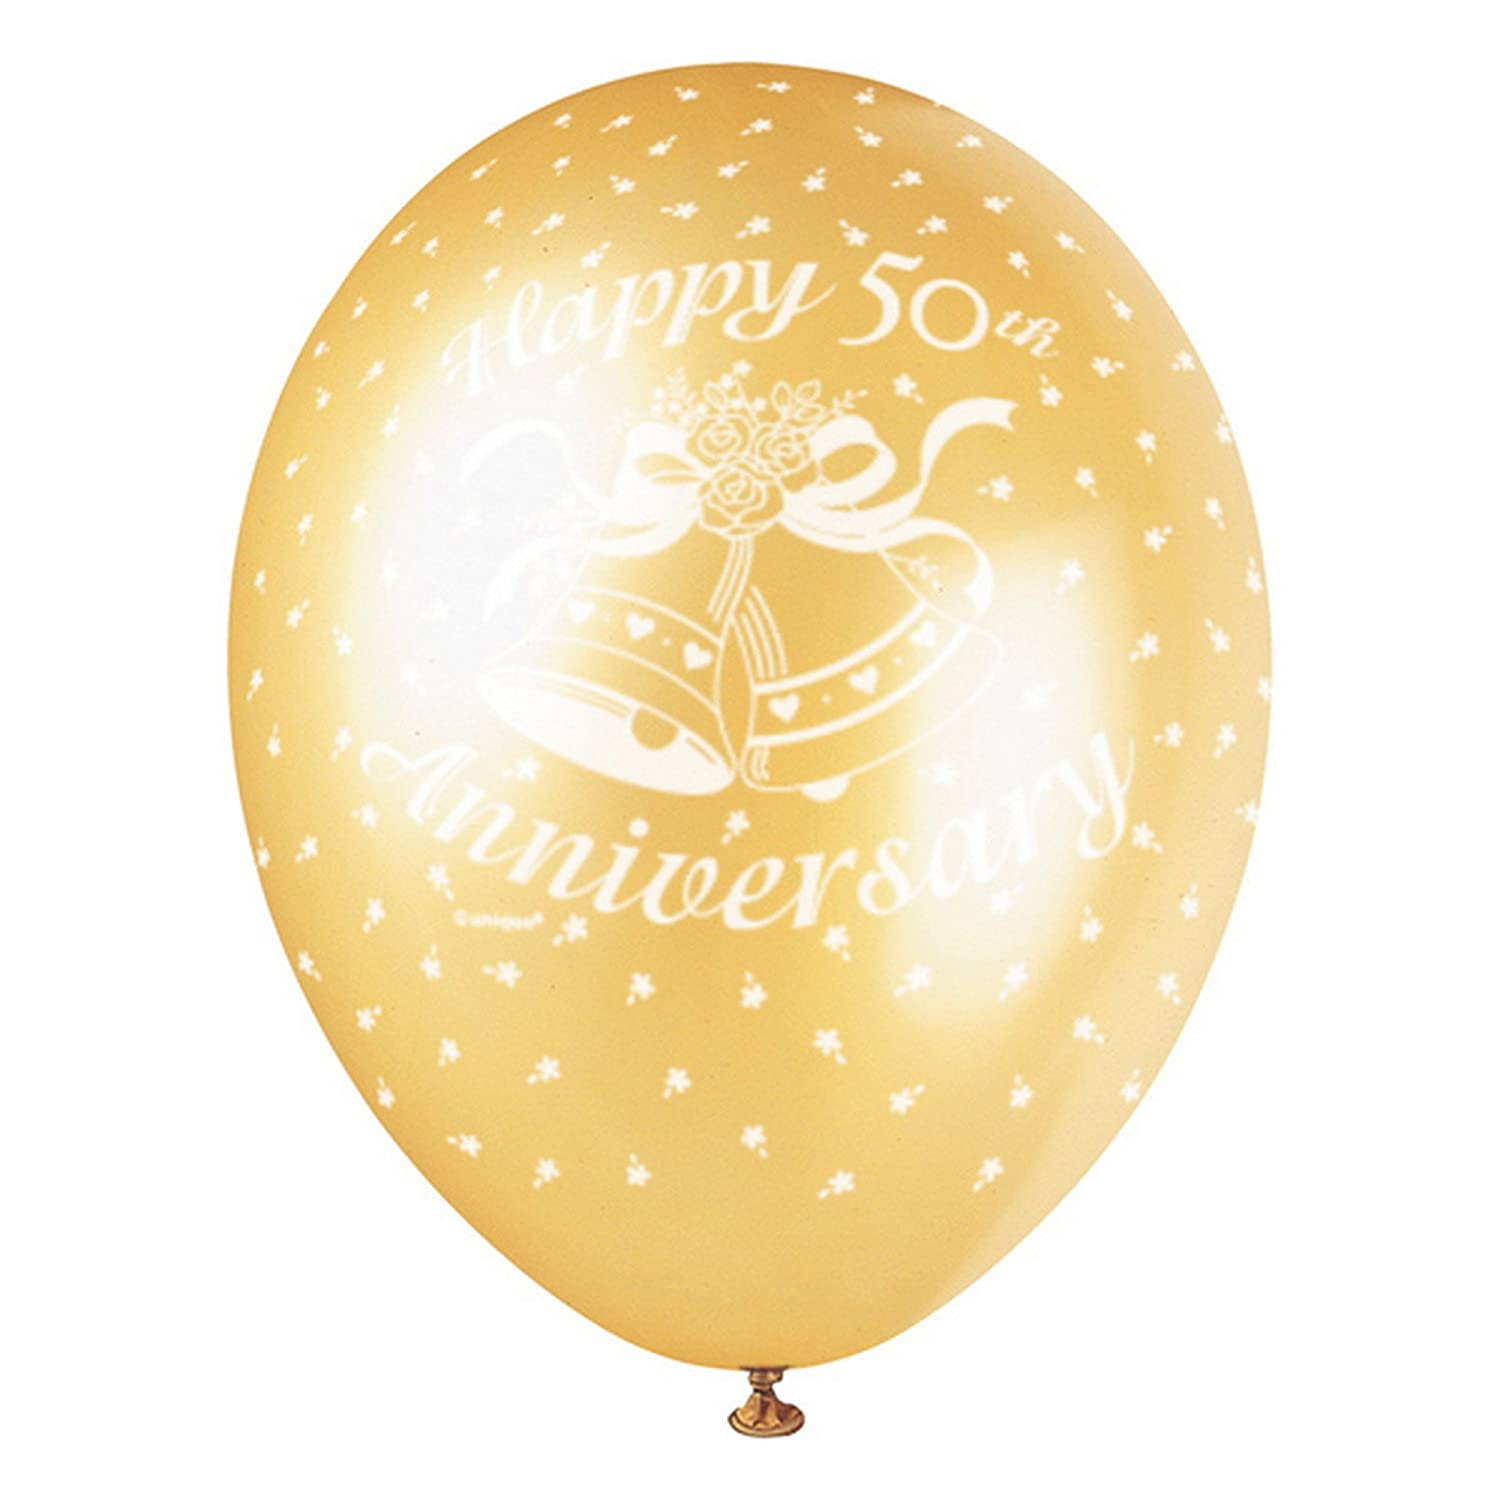 Unique Party 50th Anniversary Latex Balloons (Pack Of 5) (One Size) (Gold/White) UTSG5005_1